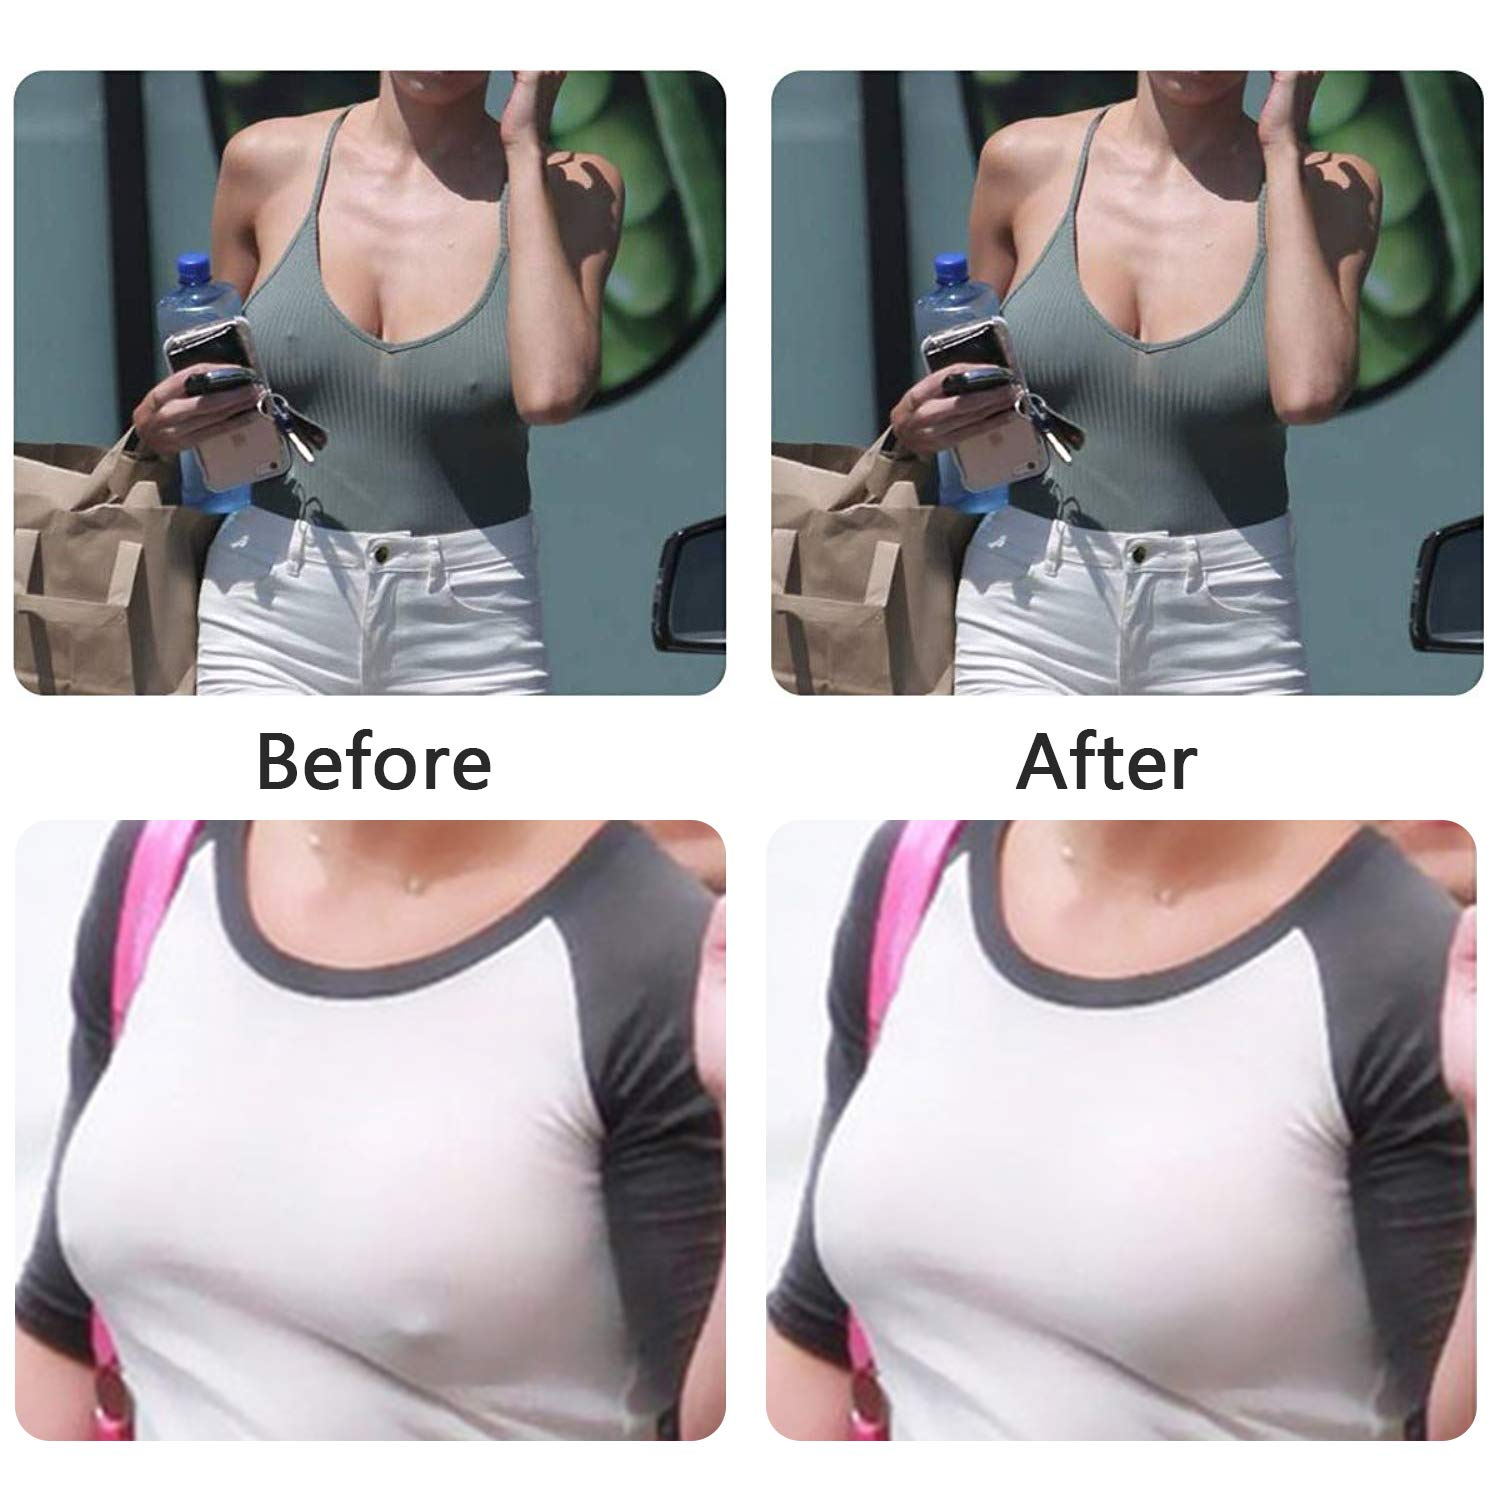 Breast Lift Tape,Adhesive Bra Reusable Push Up Nippleless Covers with Cotton Cover Nude